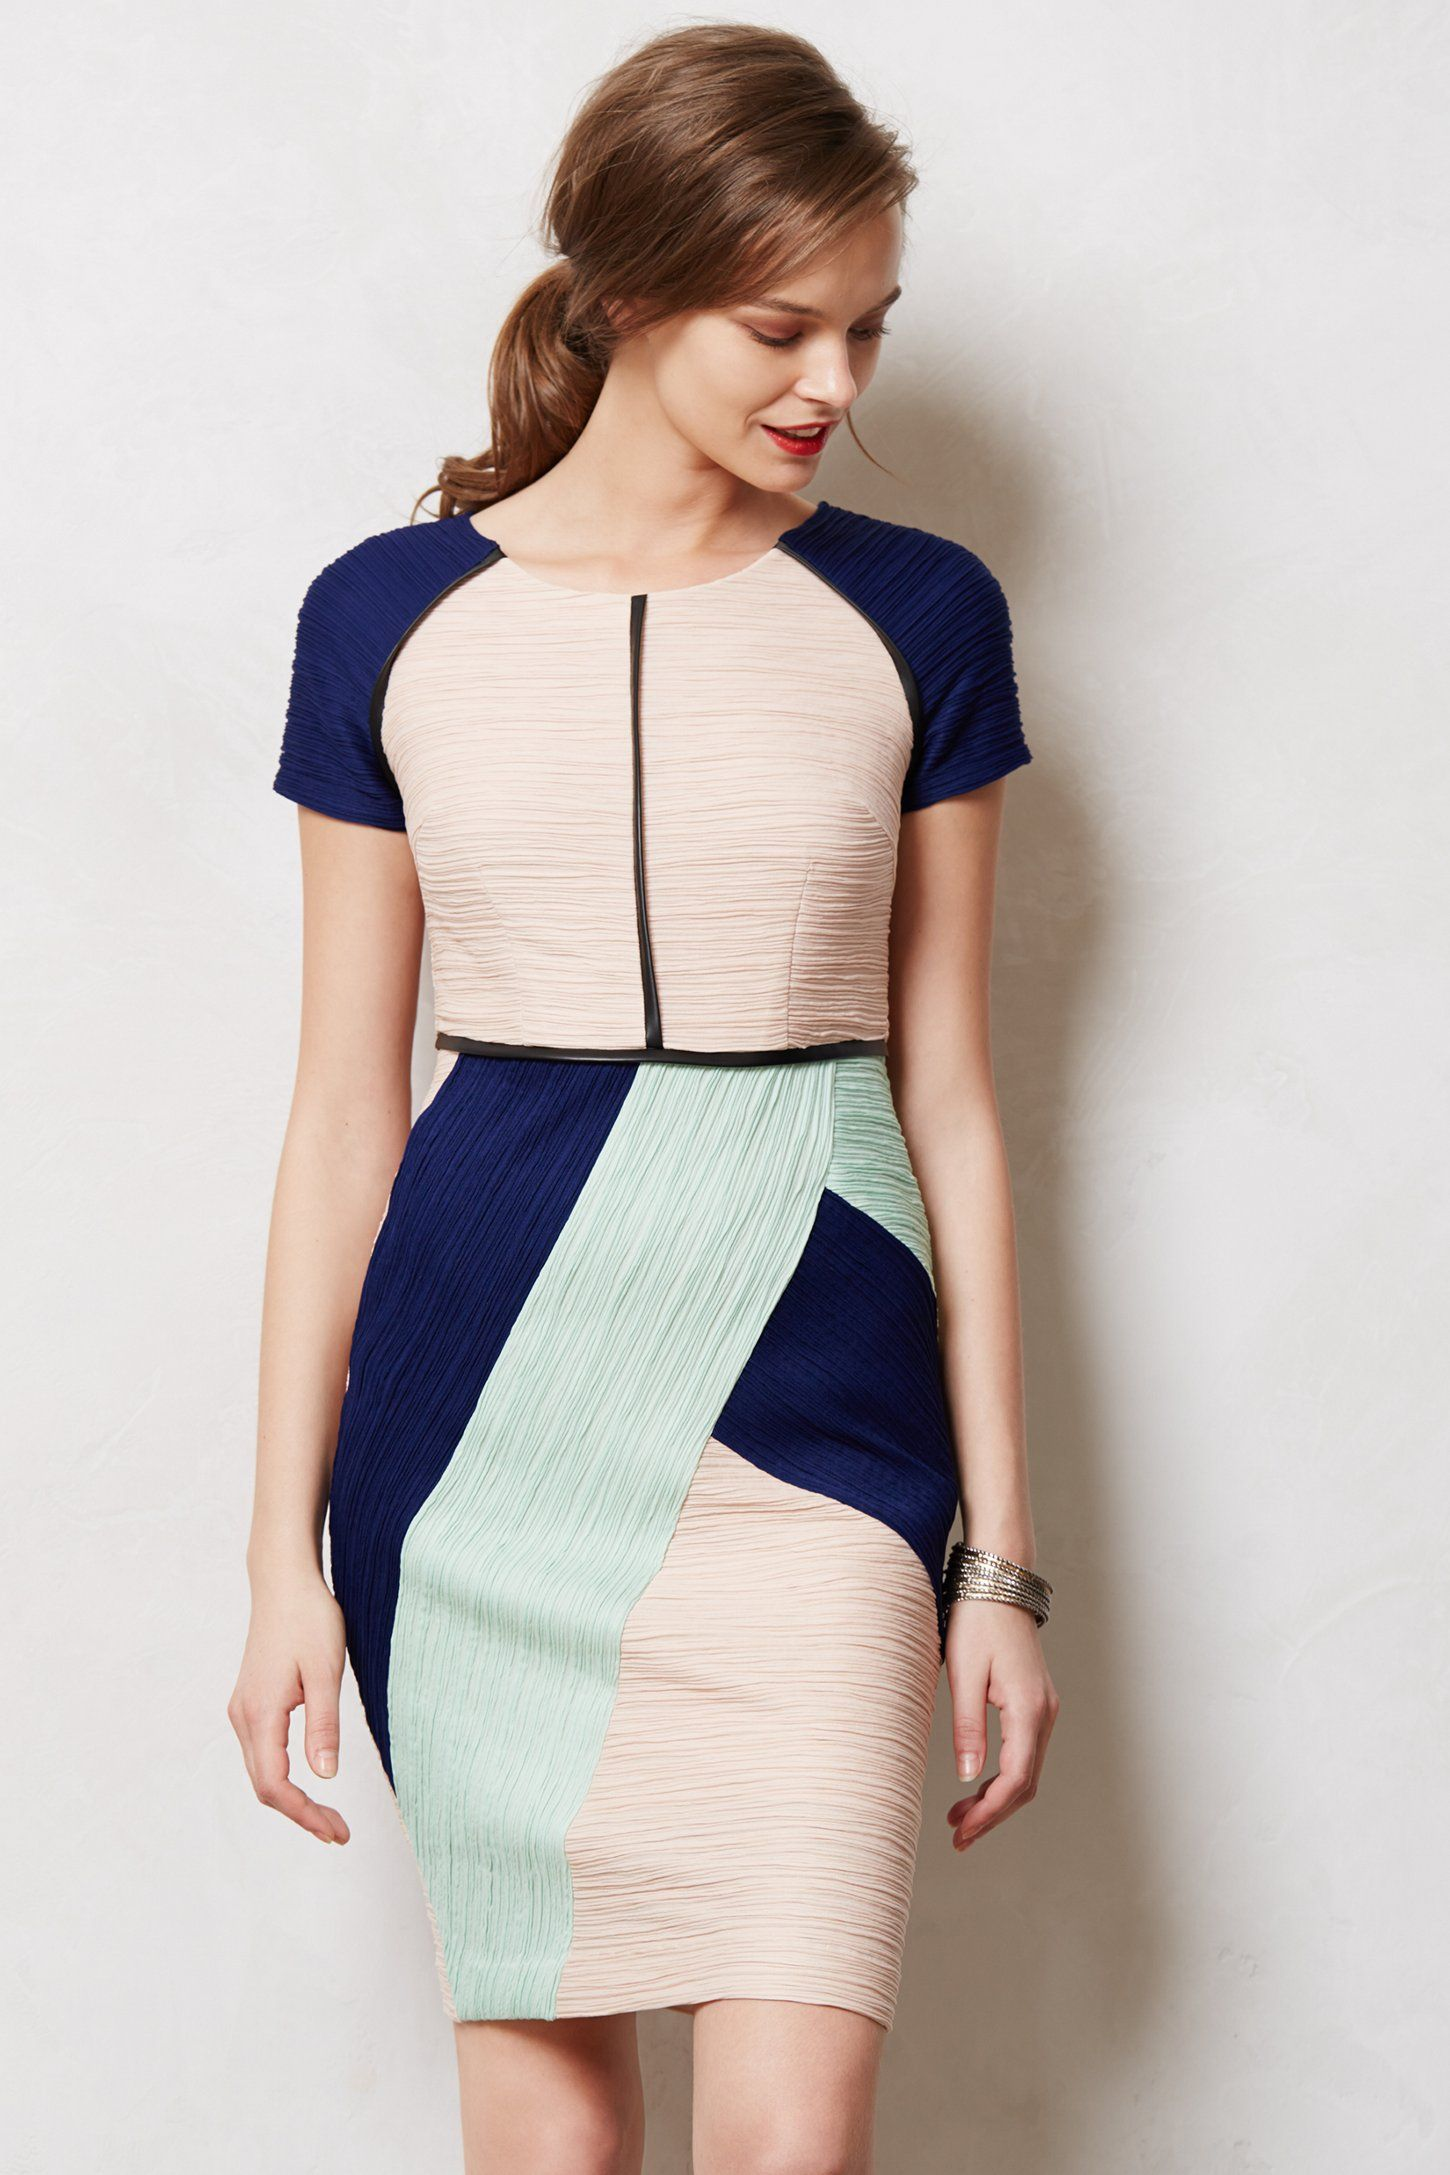 49e400a805a93 In love with this colorblock dress | My Style Pinboard | Fashion ...